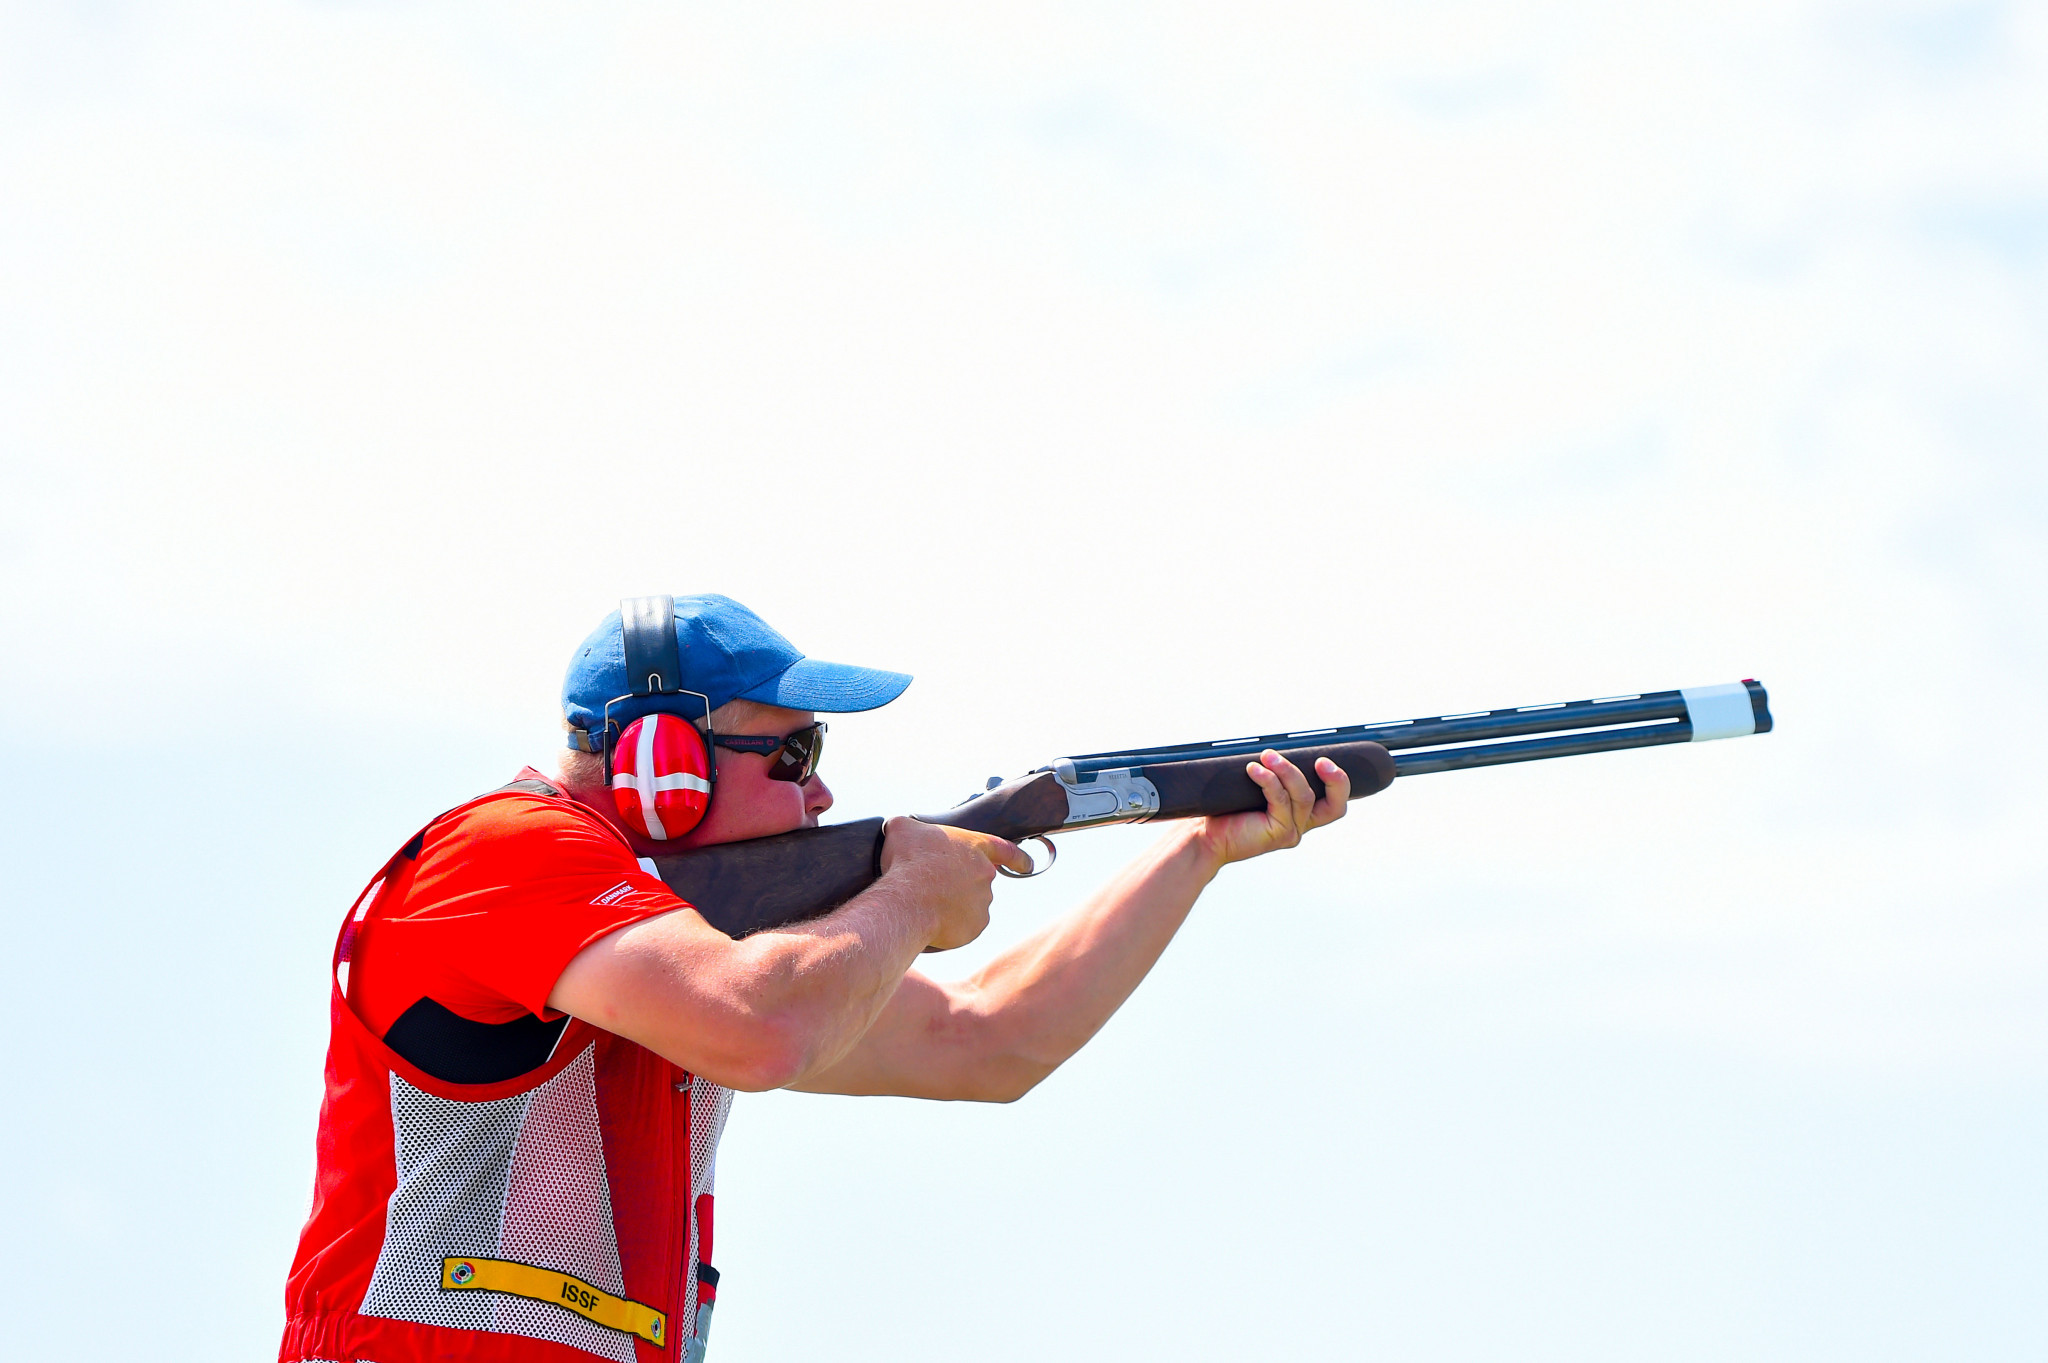 Denmark's Jesper Hansen is one of five shooters tied for the lead in the men's skeet after the first part of qualification ©Getty Images